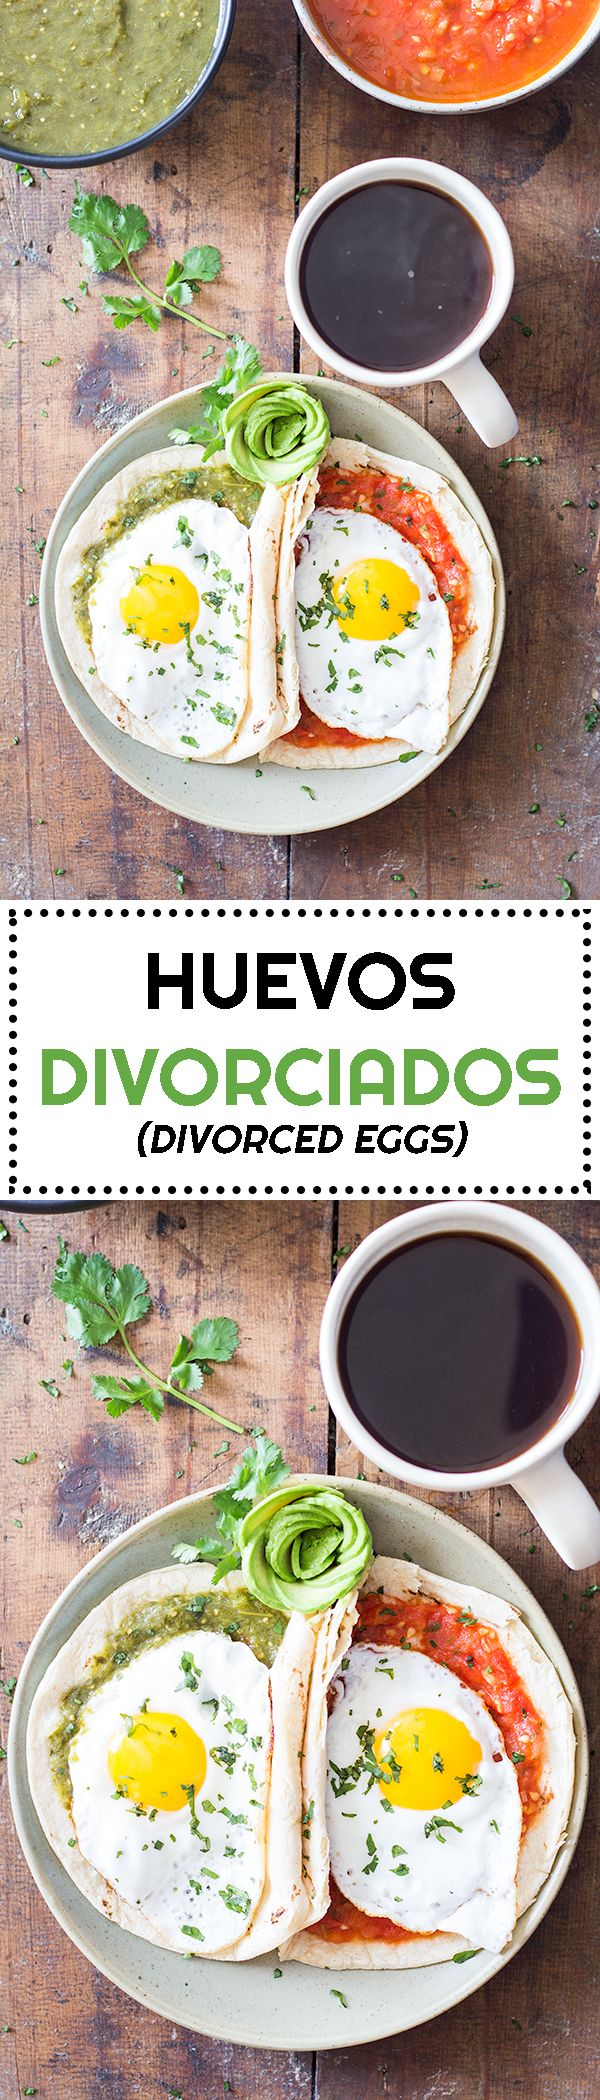 A healthy and typically Mexican breakfast: Huevos Divorciados (divorced eggs) made with a homemade salsa verde and salsa roja (green sauce and red sauce).